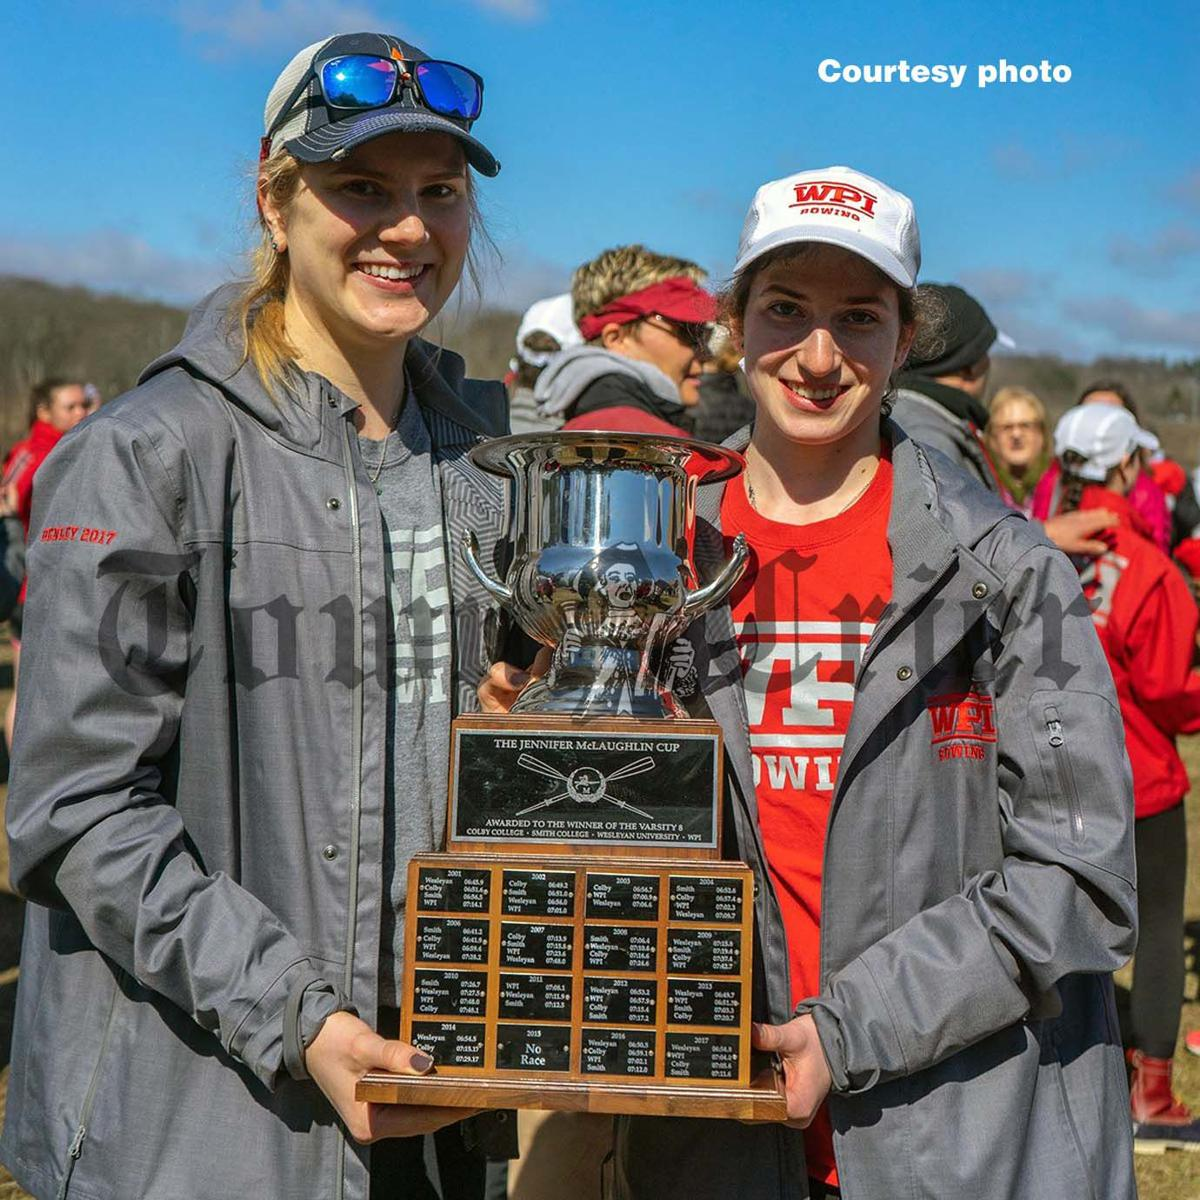 Barinelli, right, with the Jennifer McLaughlin Cup